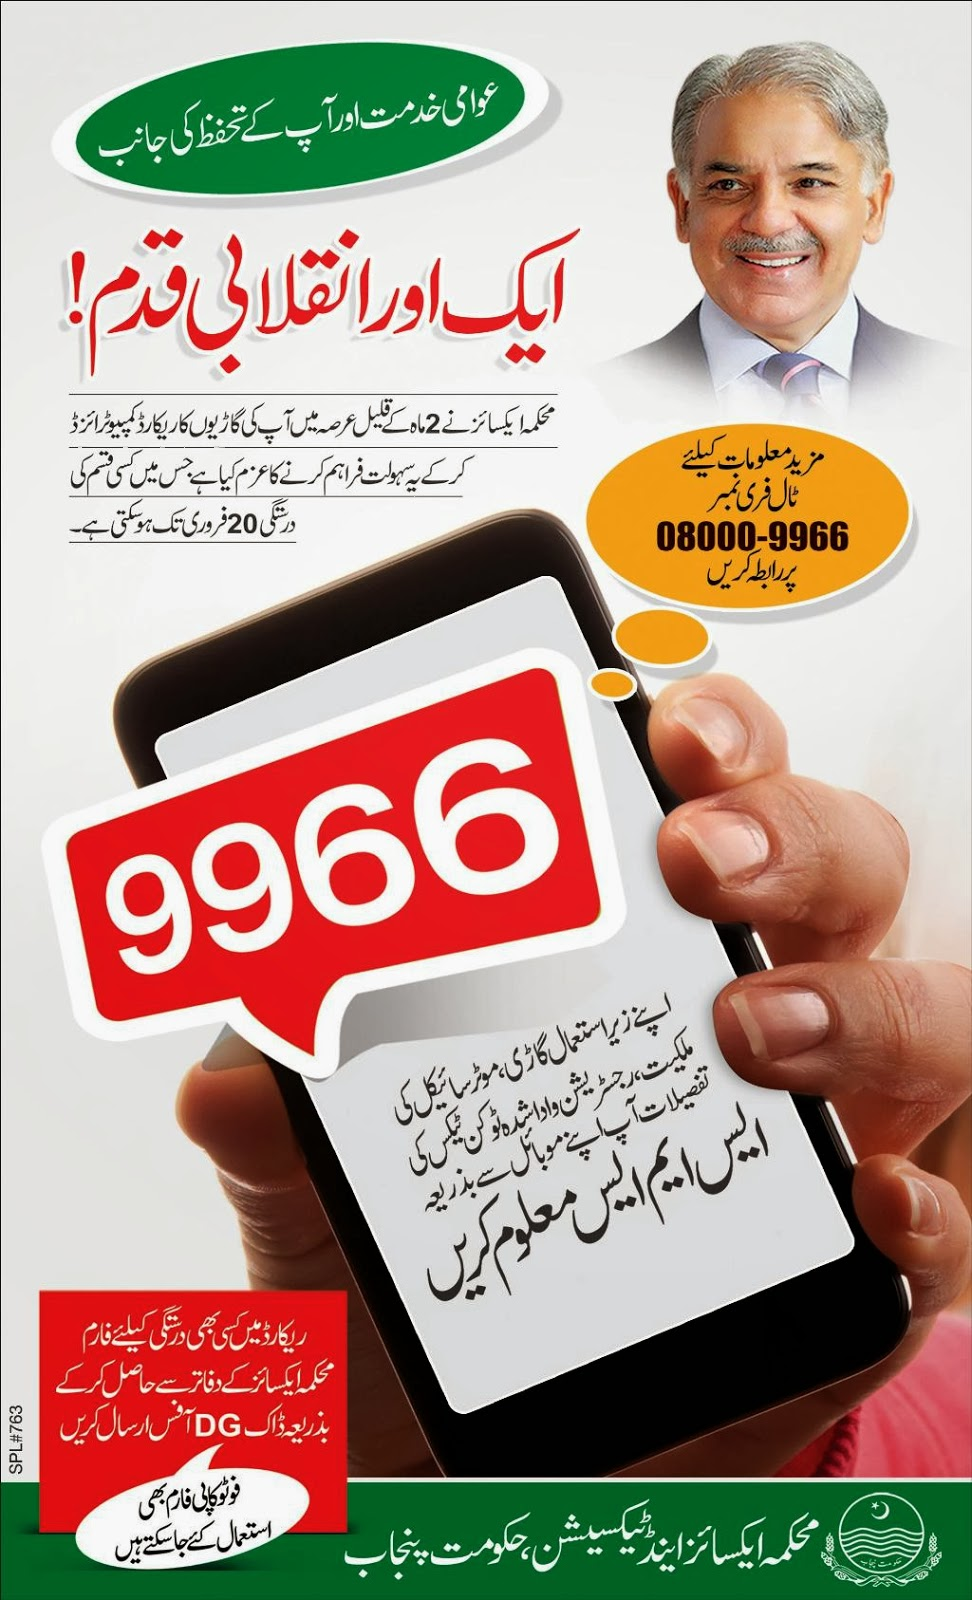 Punjab excise and taxation department 9966 SMS service